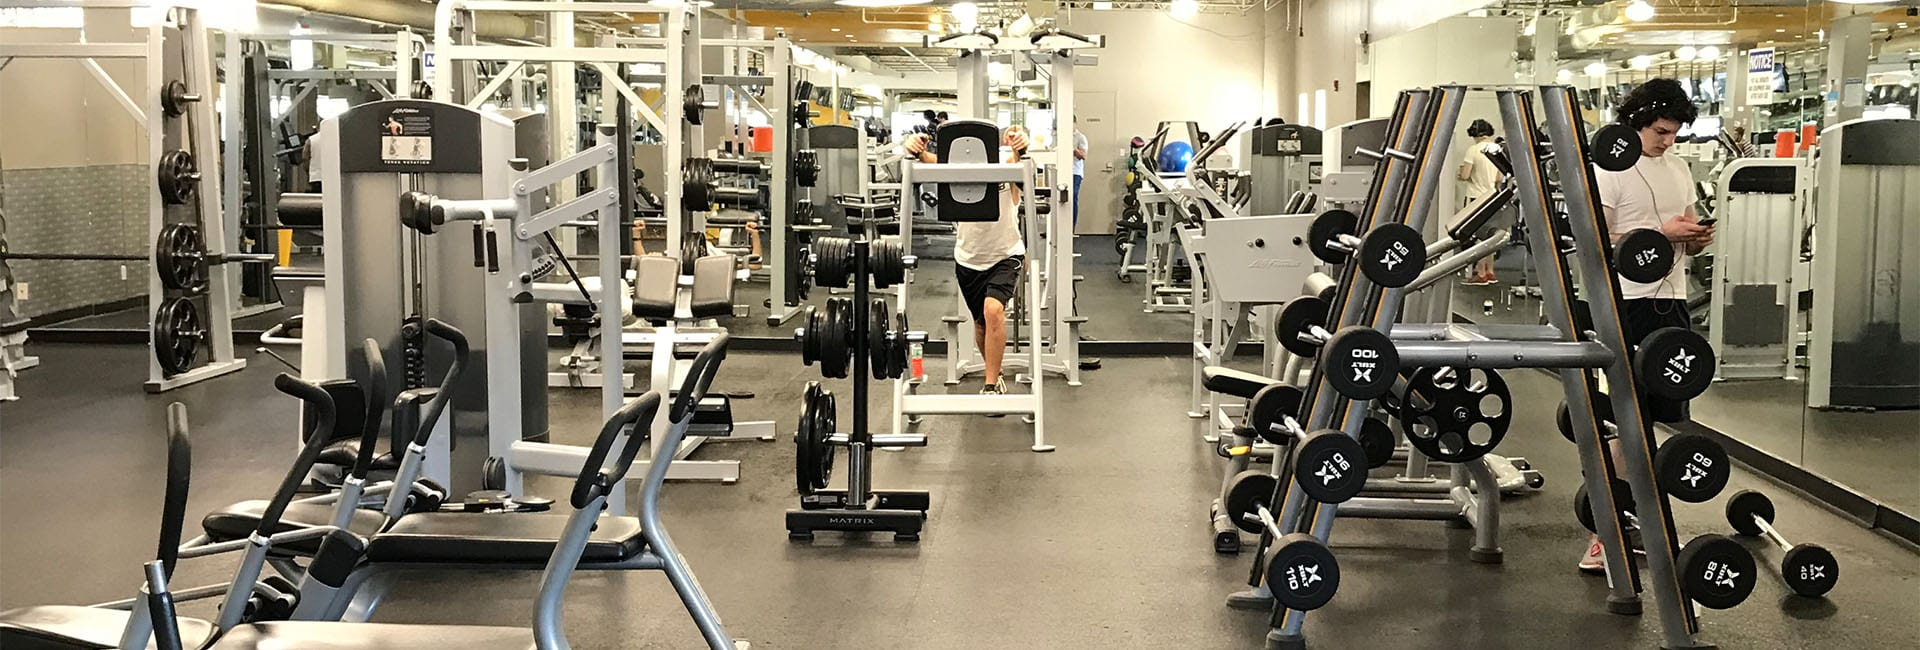 modern gym with state-of-the-art equipment